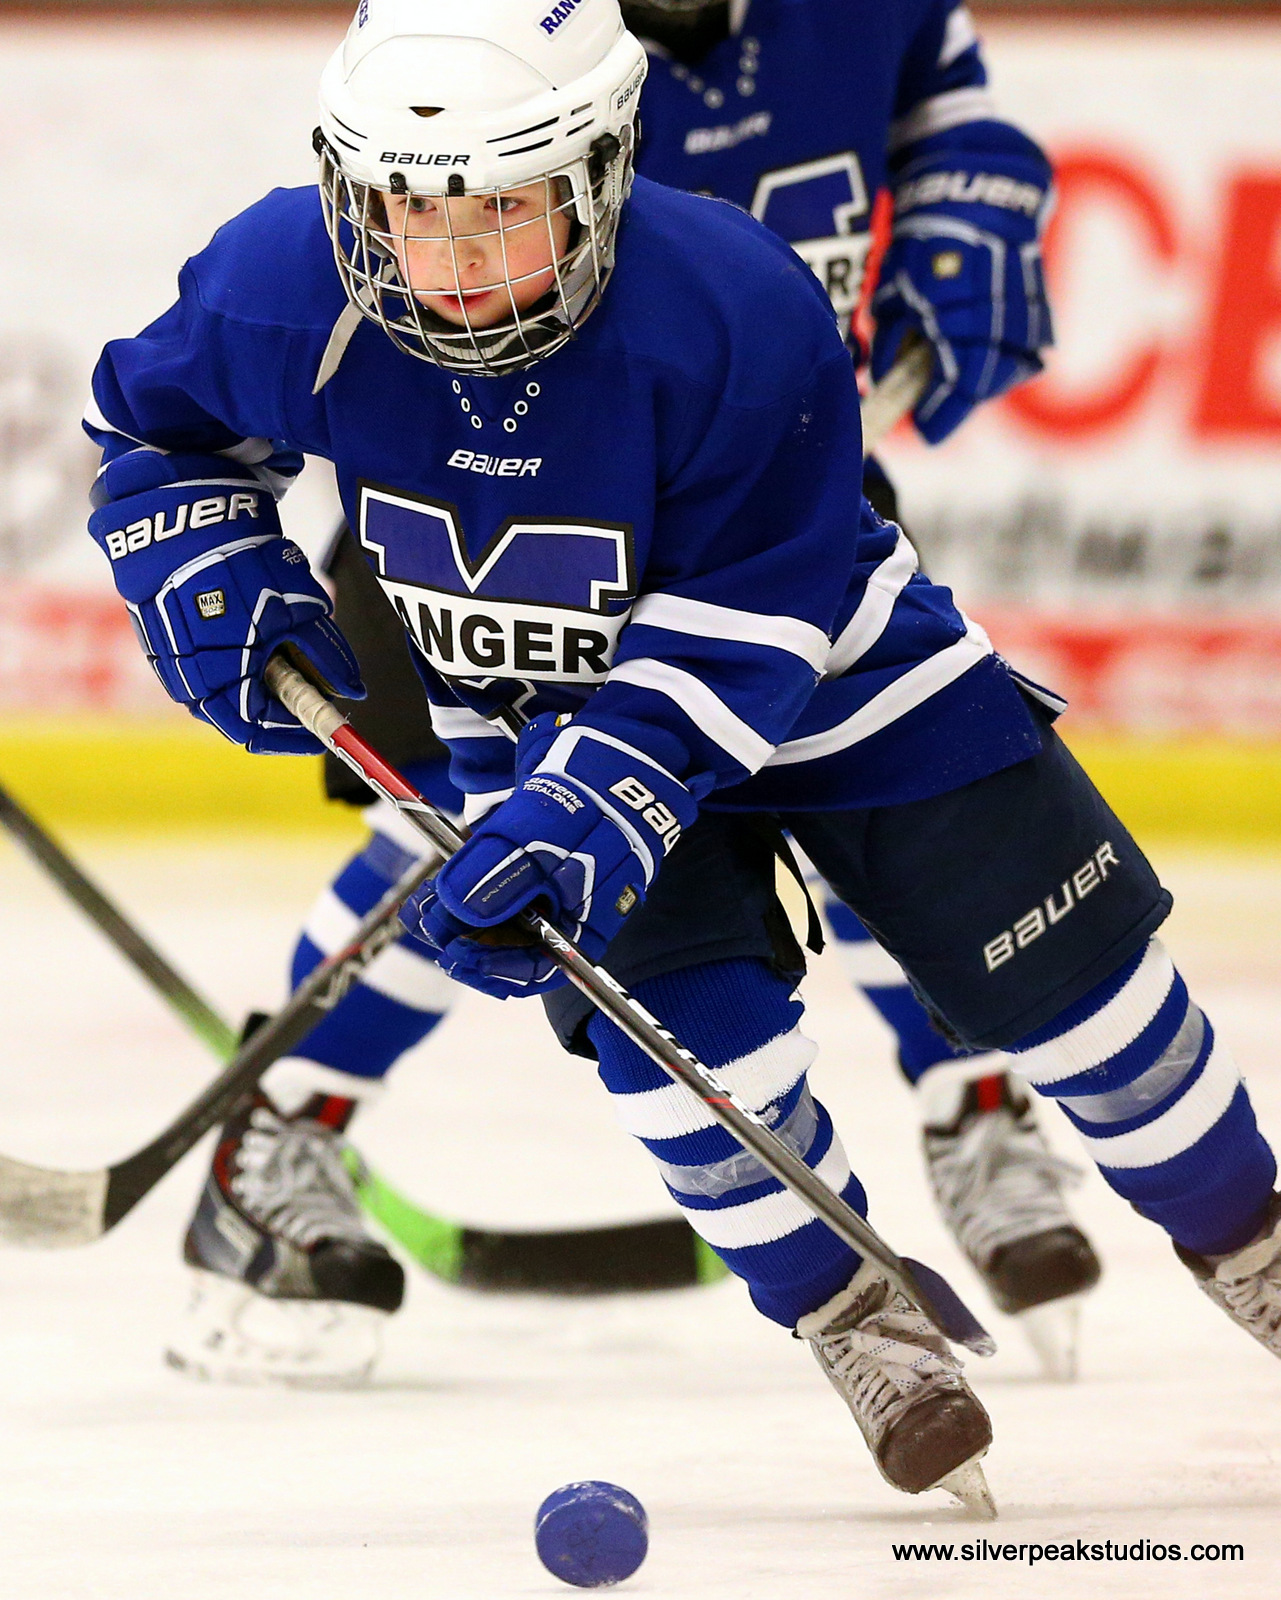 SilverPeak Studios Action Sports Hockey Mite Methuen Rangers Puck Photography